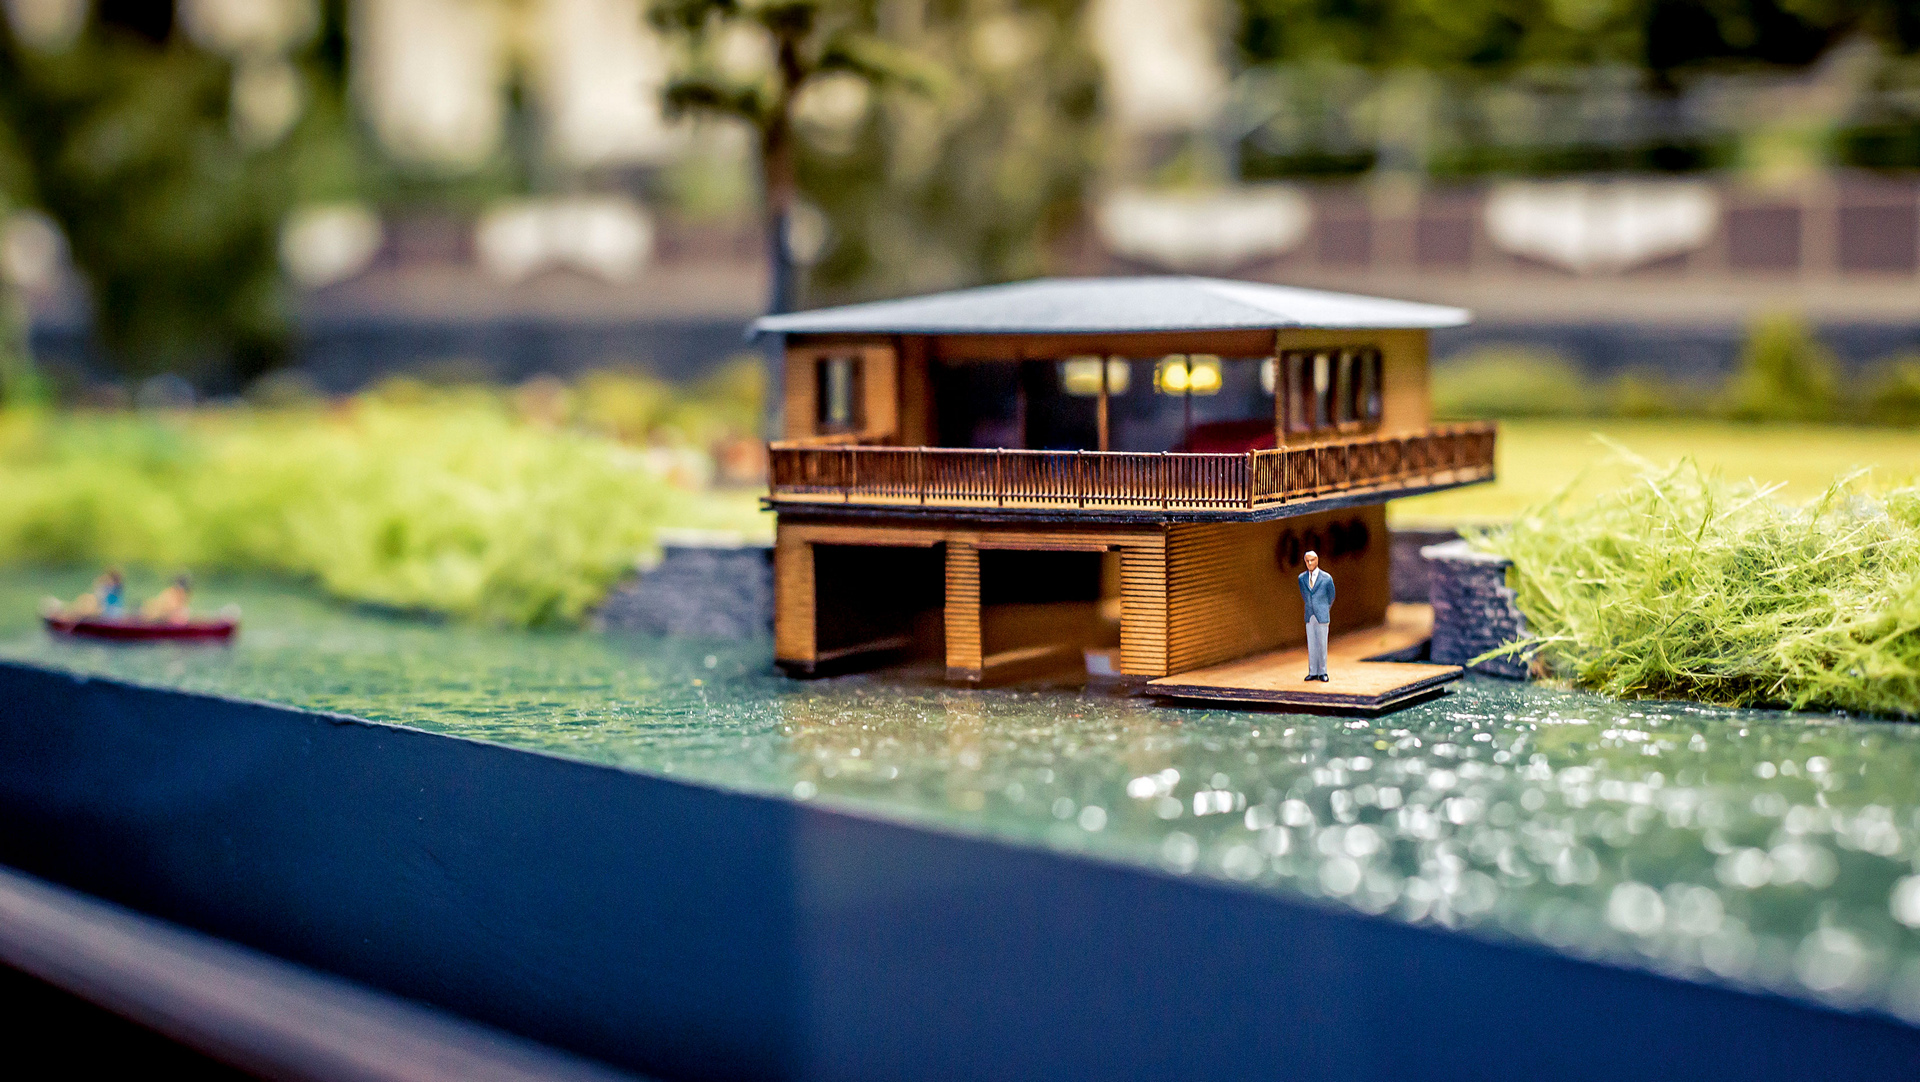 Miniature: Boathouse at the shores of Wörthersee, TraumWerk © Dr. Ing. h.c. F. Porsche AG